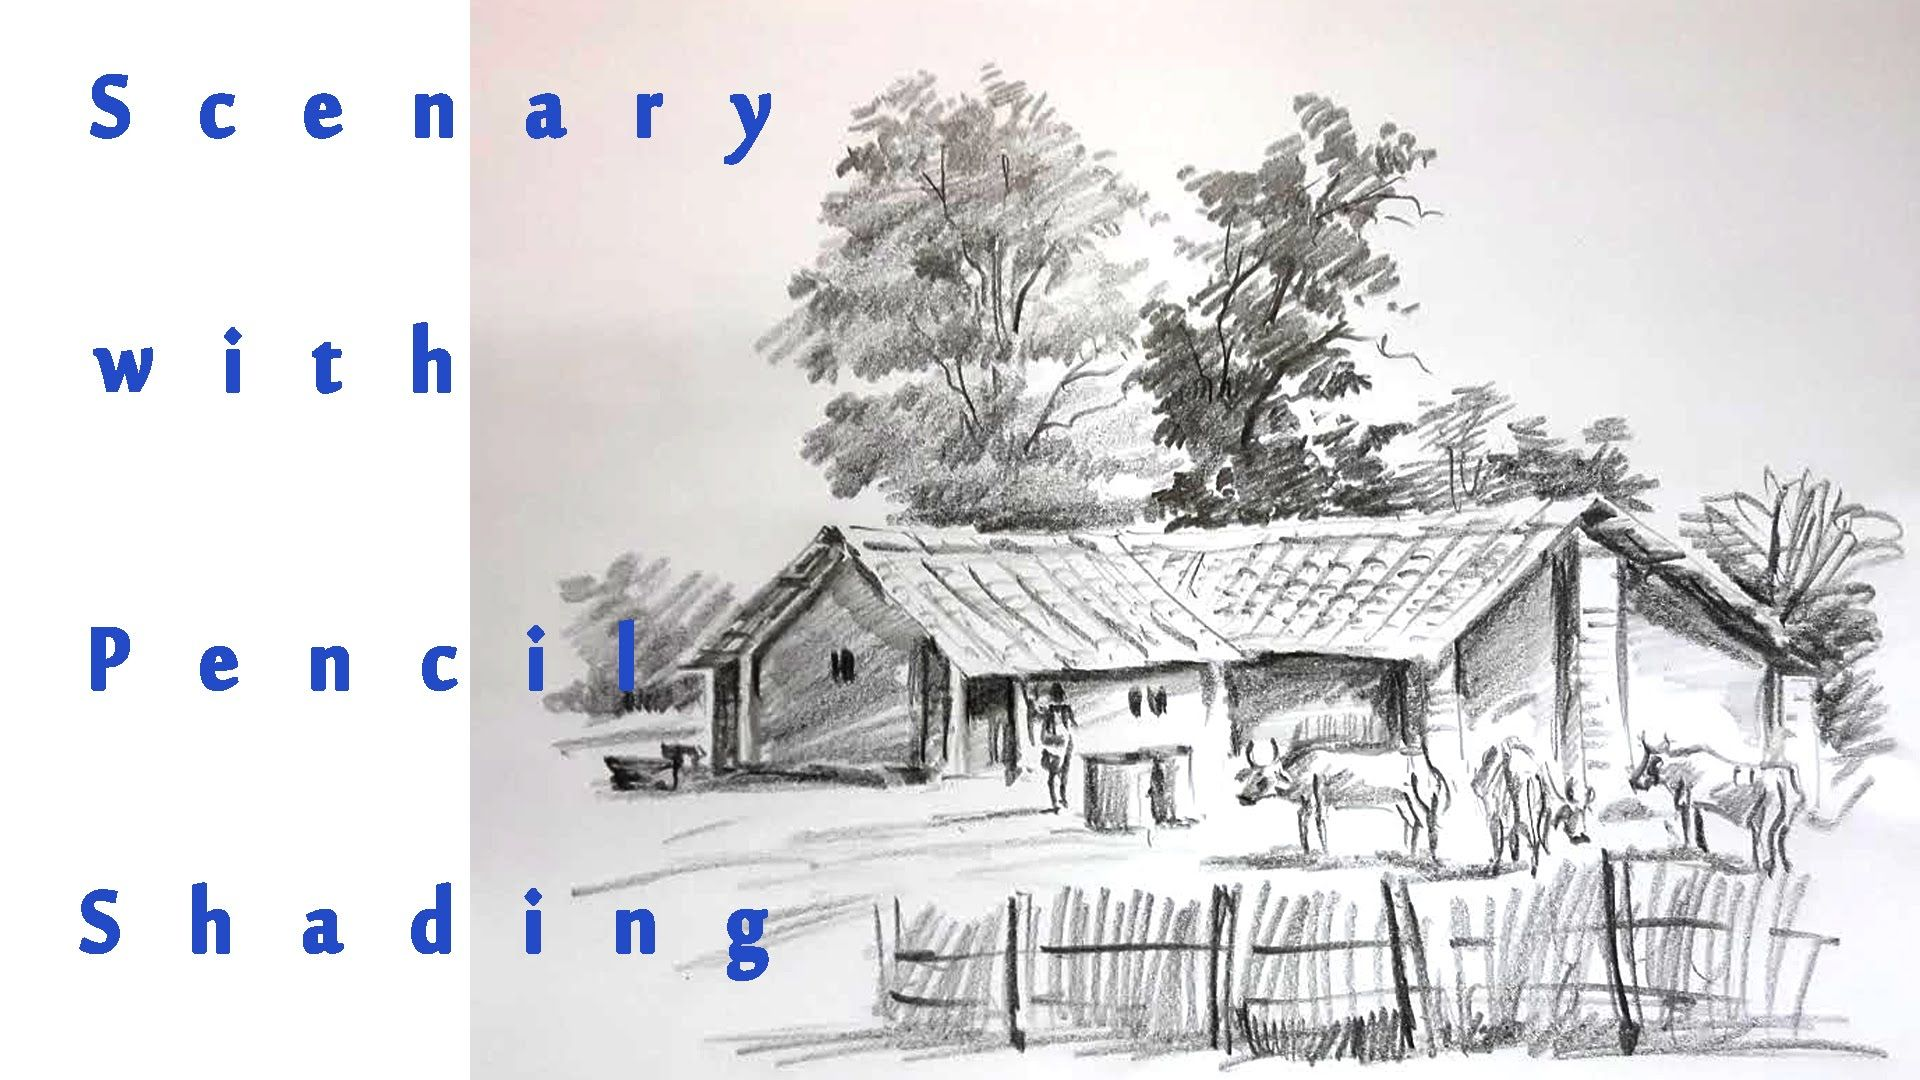 Scenary of village pencil shading real time